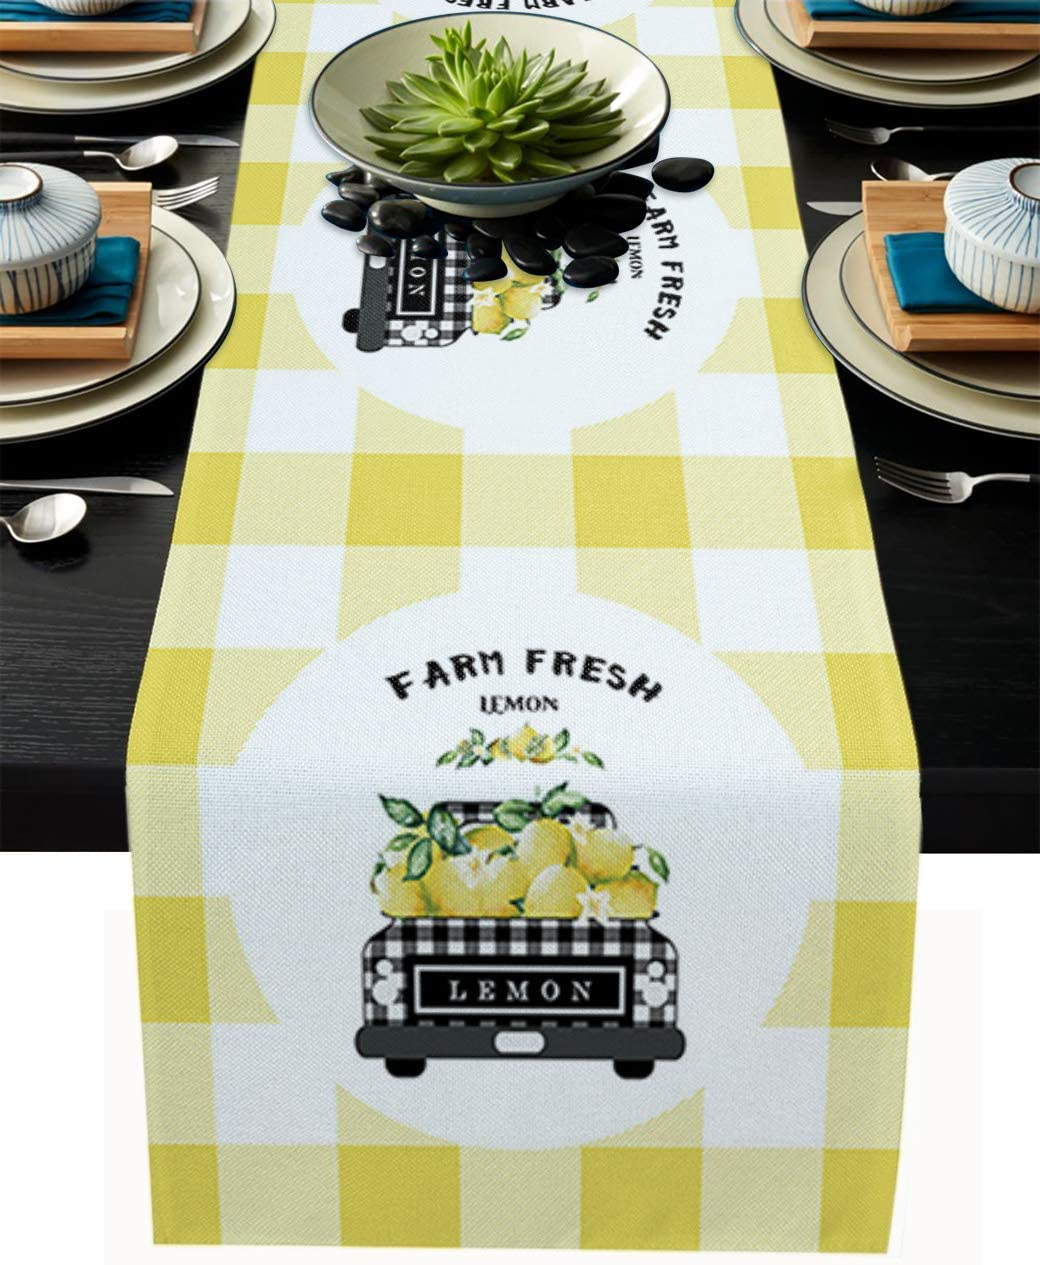 Holiday Table Runner Cotton-Burlap Linen 72 Inches Long Check Truck with Fresh Lemons Yellow White Grid Waterproof Dining Table Decor for Farmhouse Wedding Banquet Party Decor Dress Scarf 16''x 72''